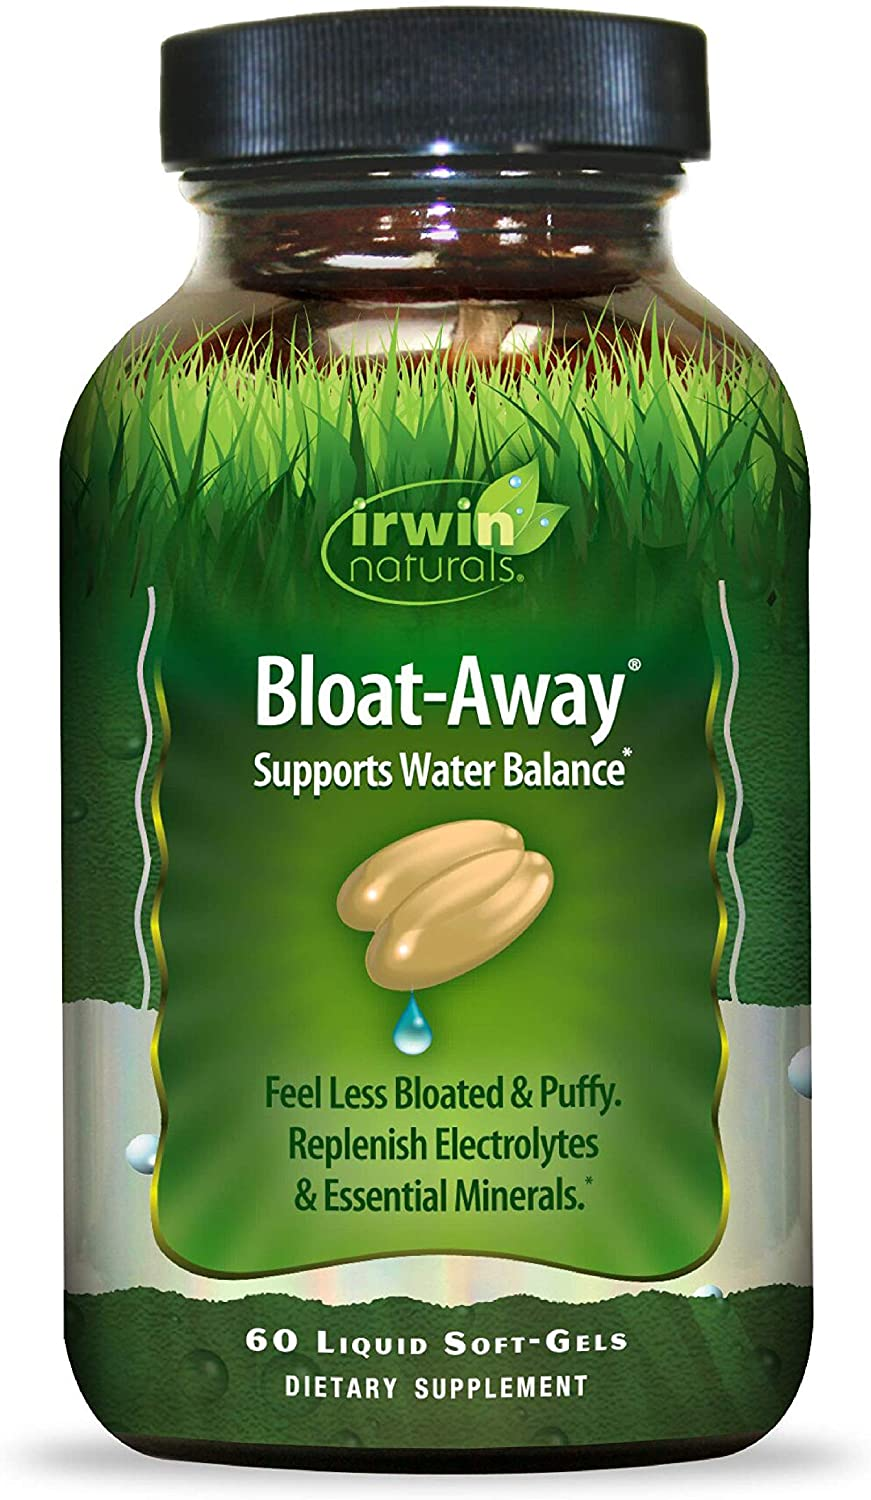 Irwin Naturals Bloat-Away - Water Balance Support - Replenish Electrolytes & Essential Minerals - 60 Liquid Softgels: Health & Personal Care